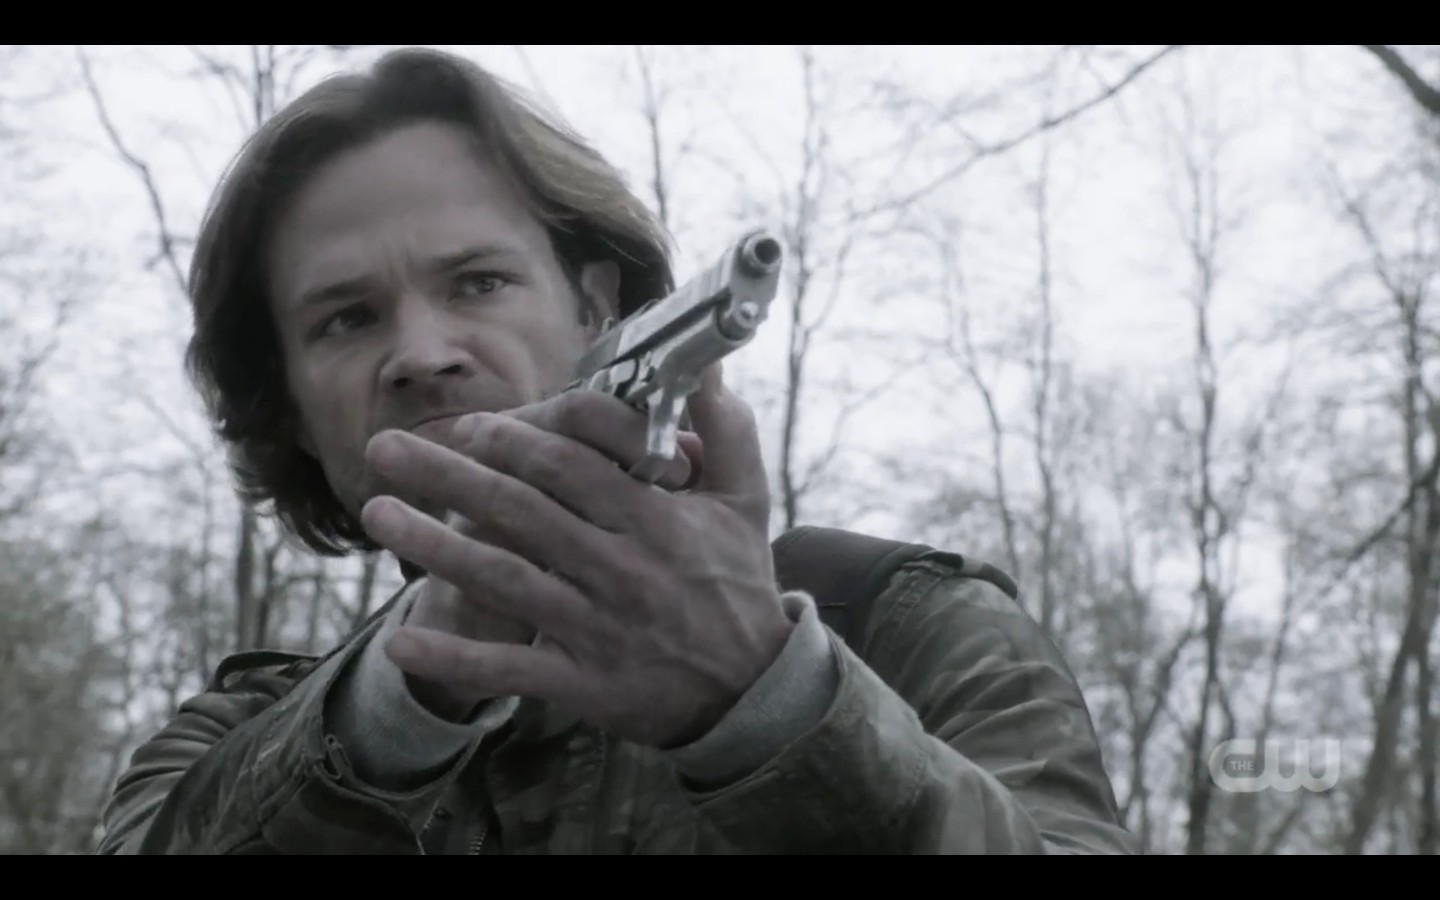 sam winchester with gun fighting with castiel supernatural exodus